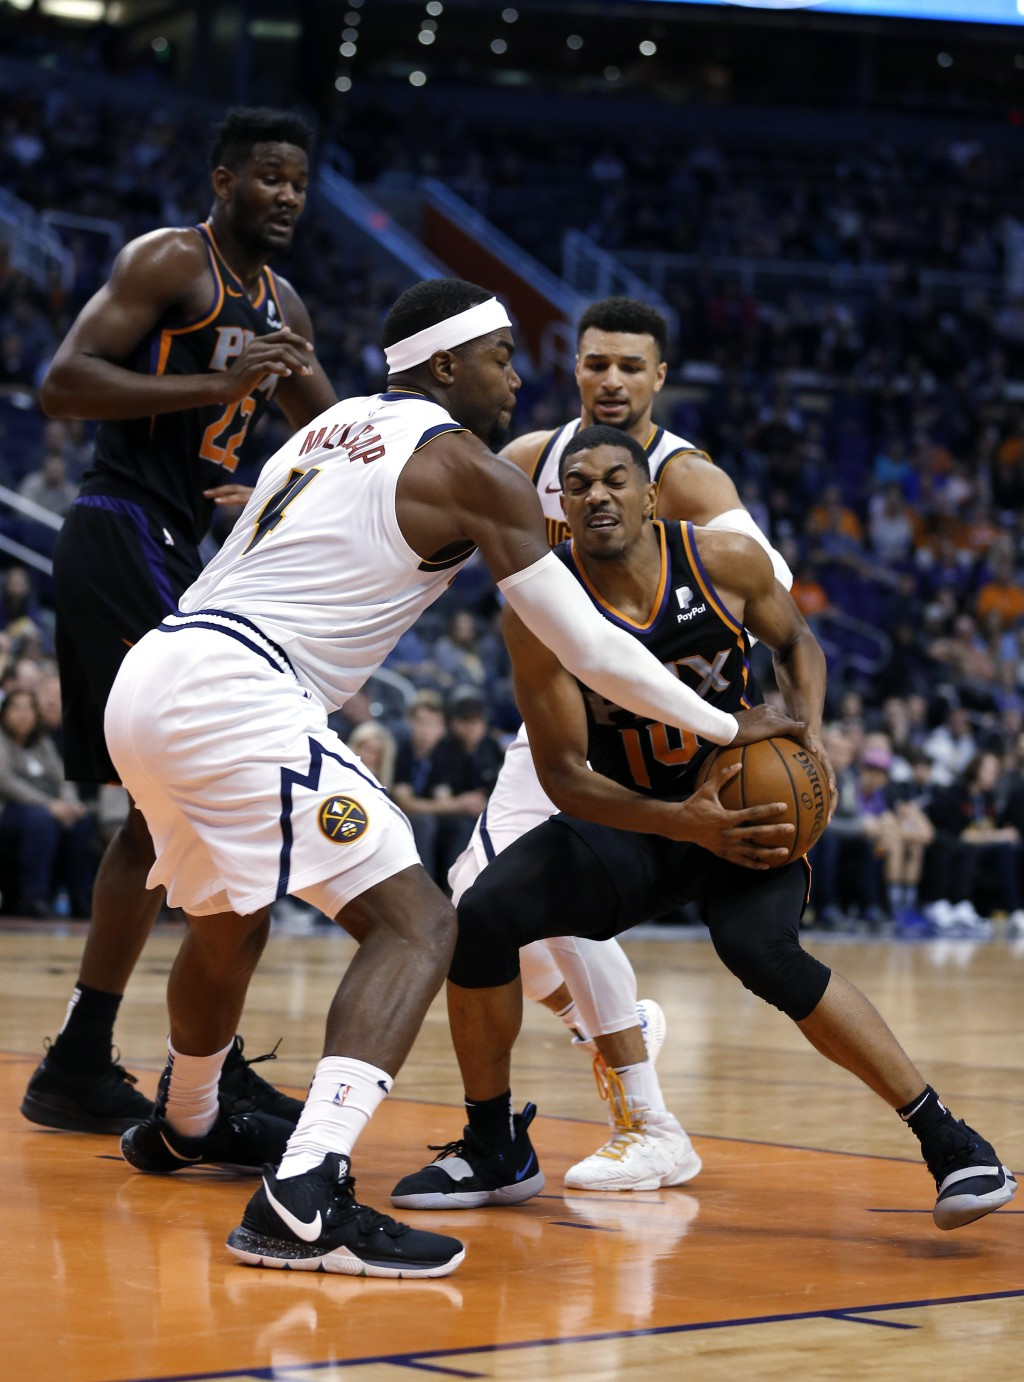 Denver Nuggets forward Paul Millsap (4) and Phoenix Suns guard De'Anthony Melton (14) vie for the ball during the second half during an NBA basketball